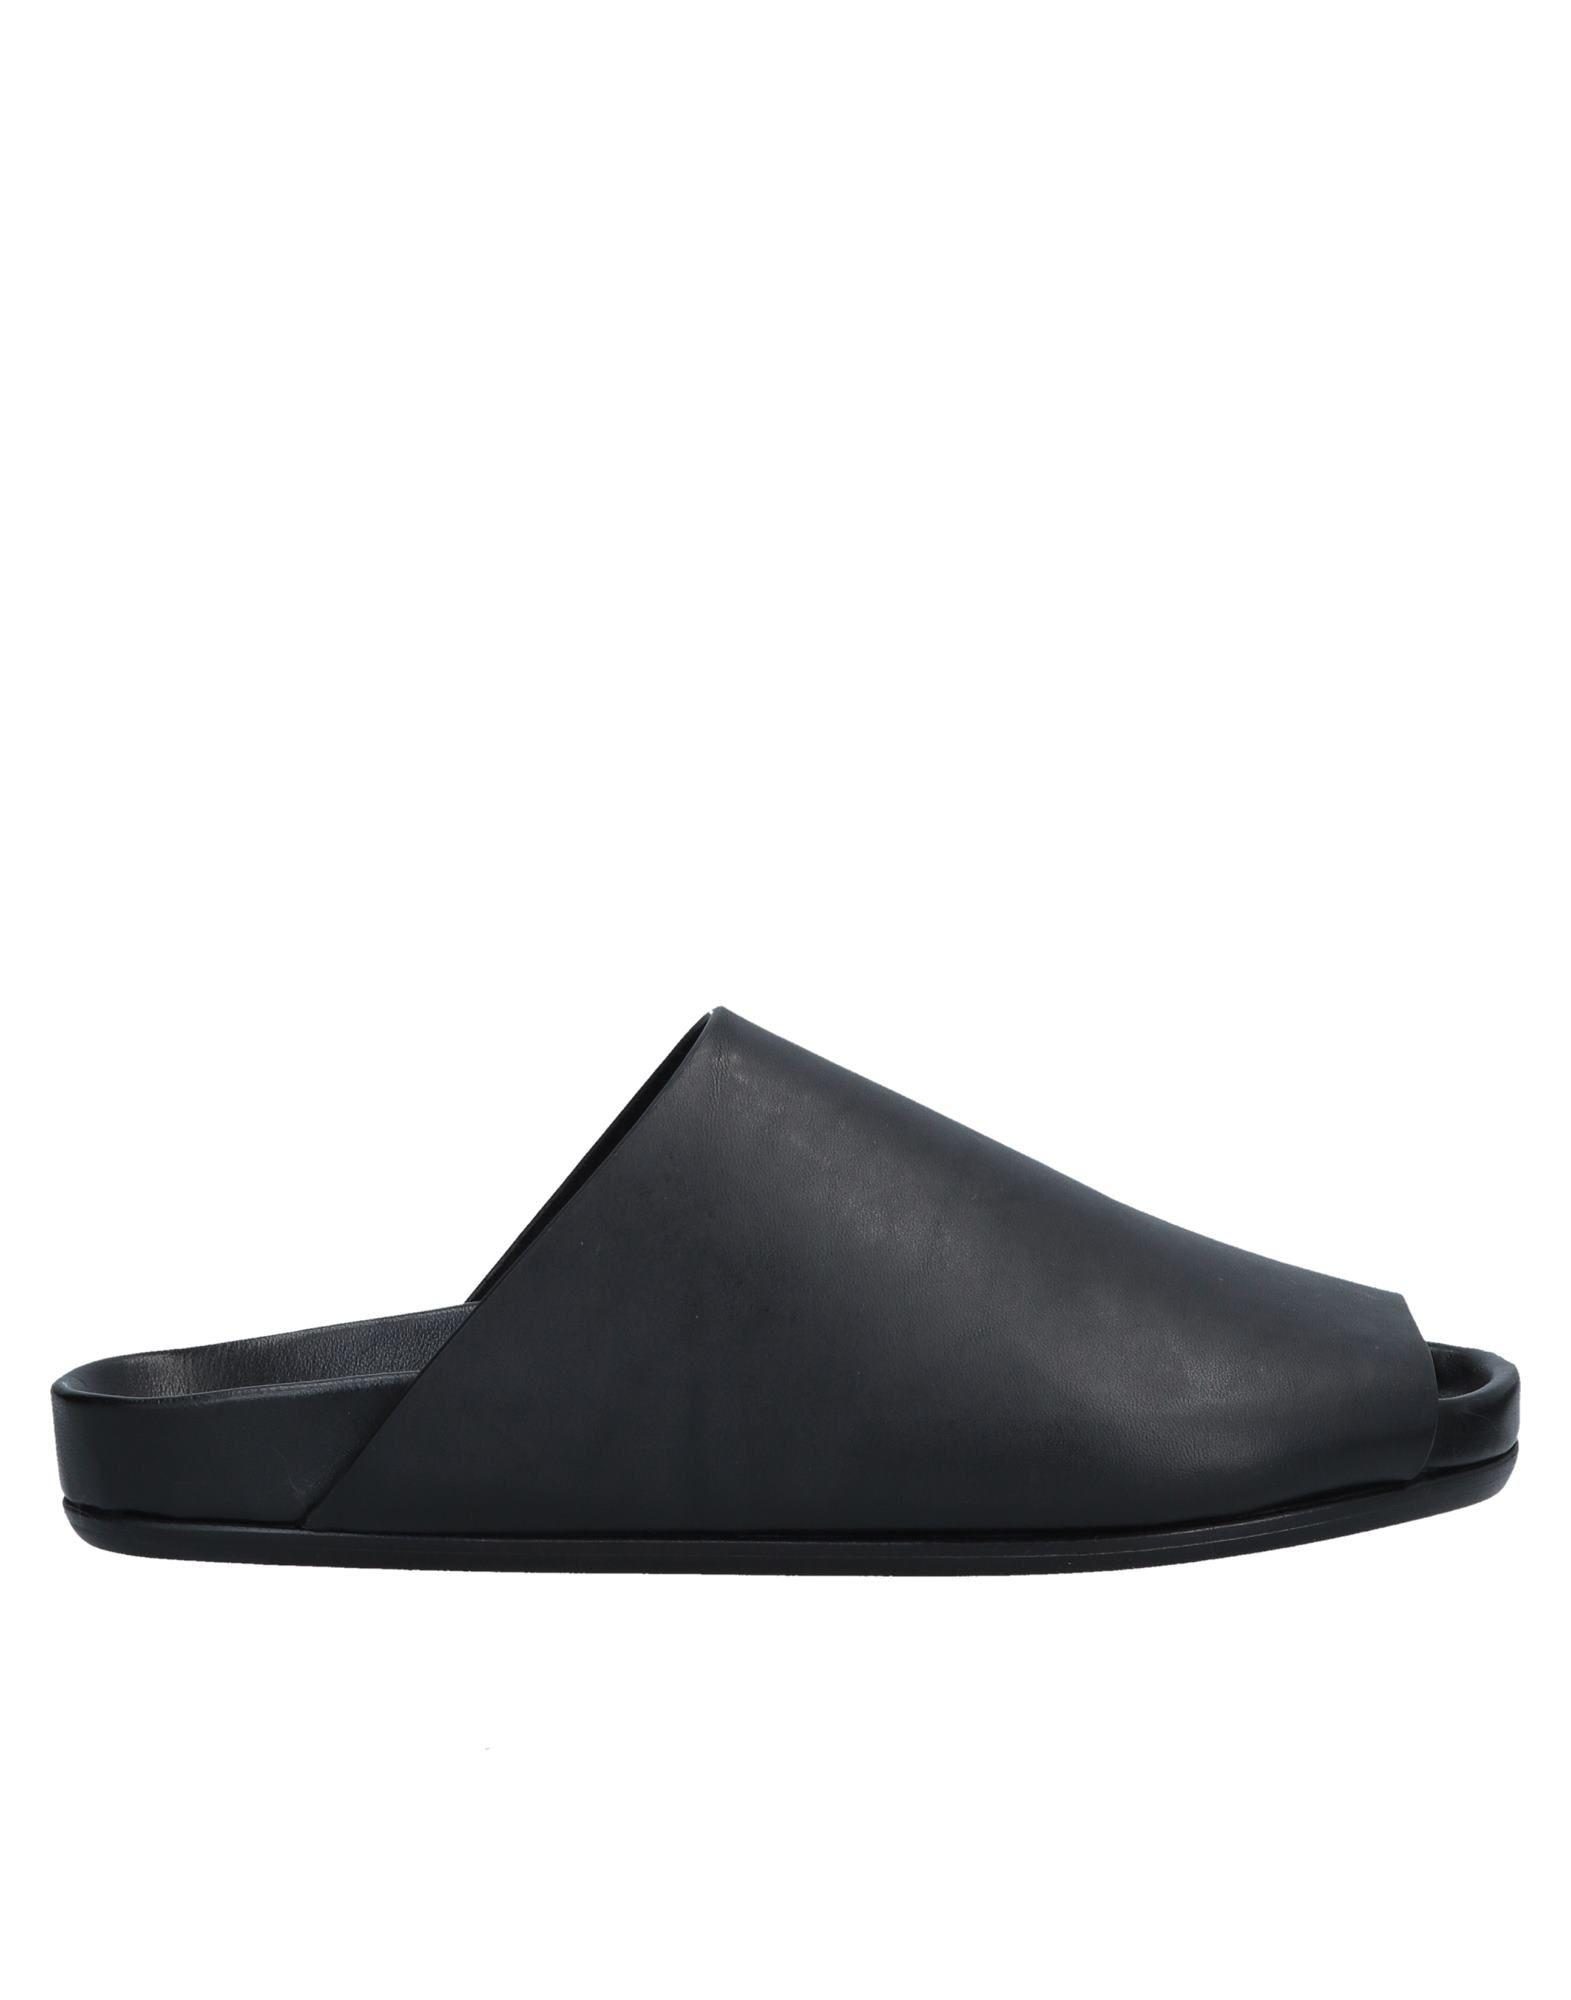 e70fa48487364a Lyst - Rick Owens Sandals in Black for Men